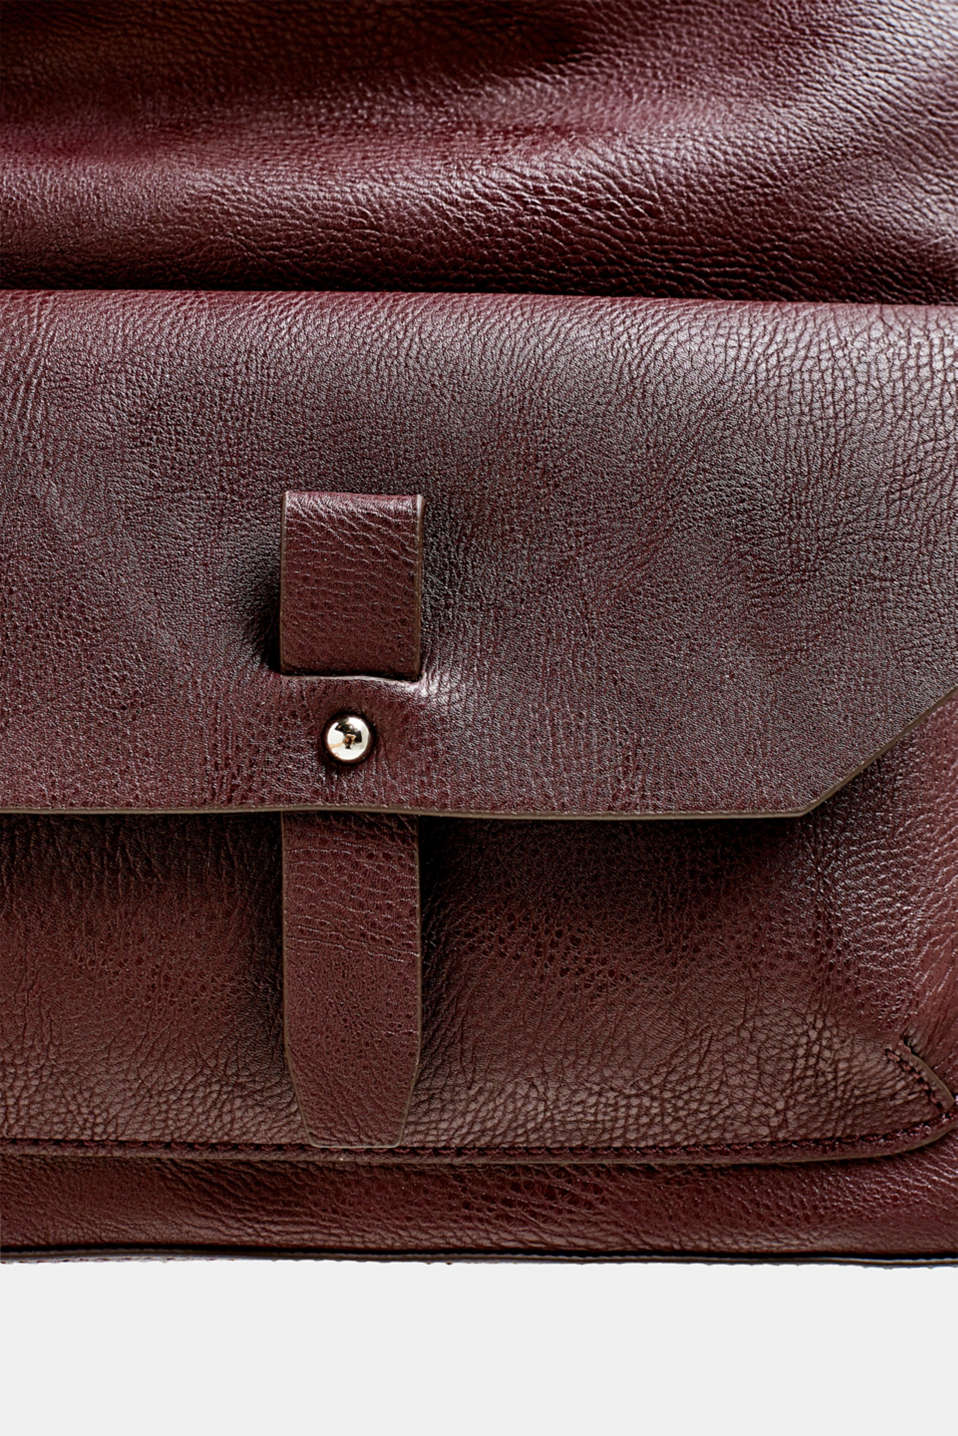 Flapover bag in faux leather, BORDEAUX RED, detail image number 3